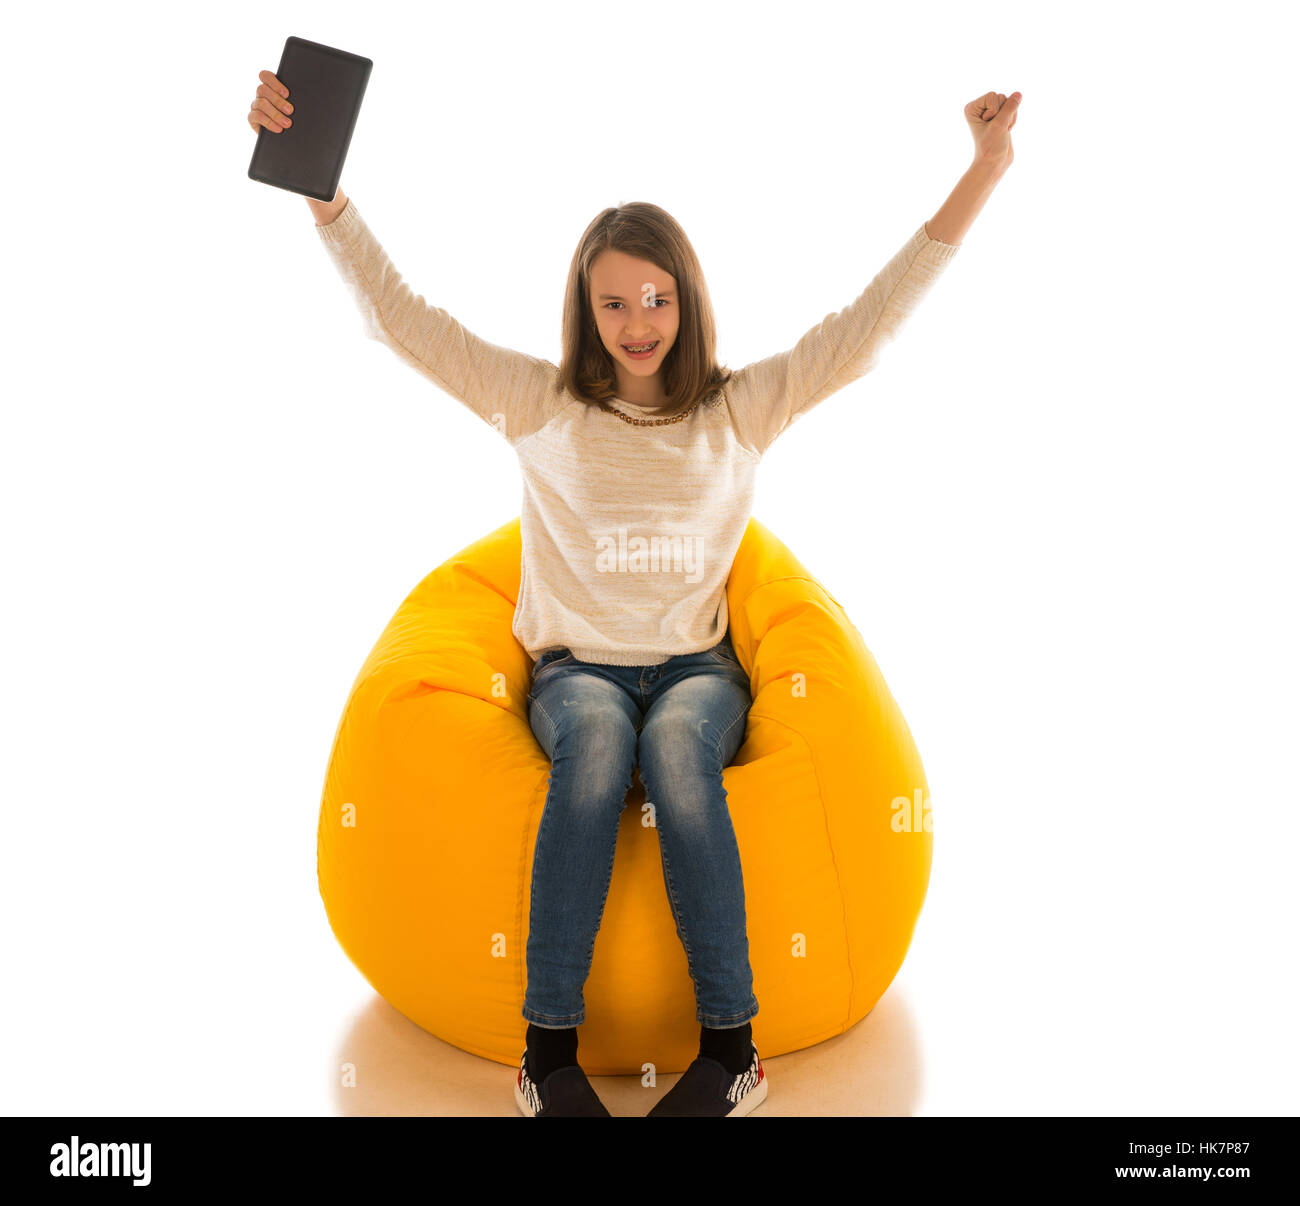 Young cute girl put her hands up and holding the tablet while sitting on yellow beanbag isolated on white background - Stock Image